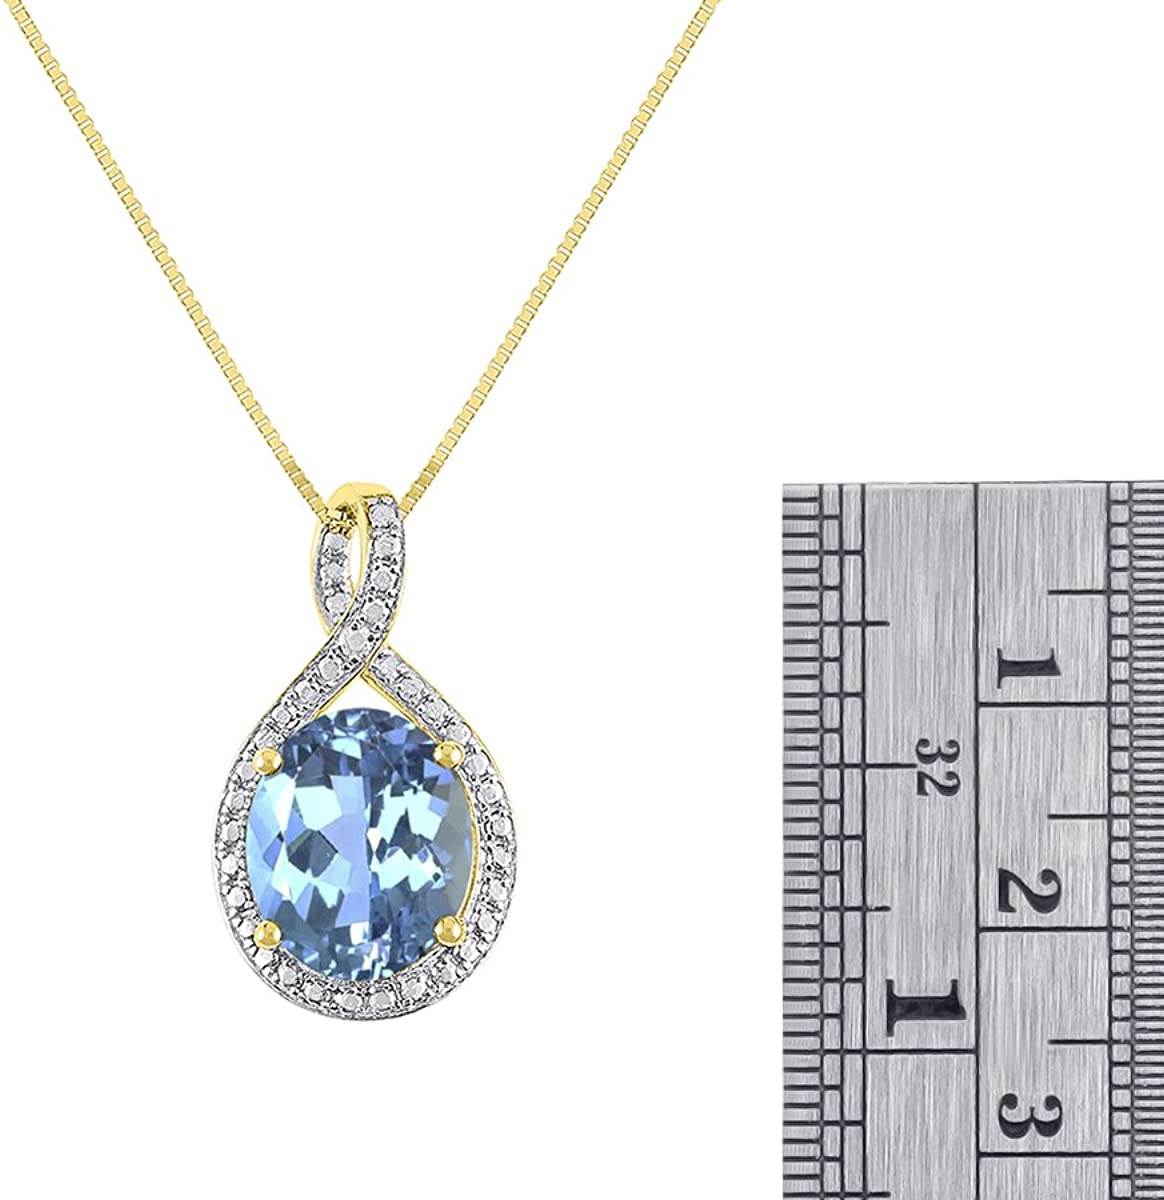 Gorgeous 12x10 Oval Blue Topaz /& Diamond Pendant set in Sterling Silver with 18 Chain